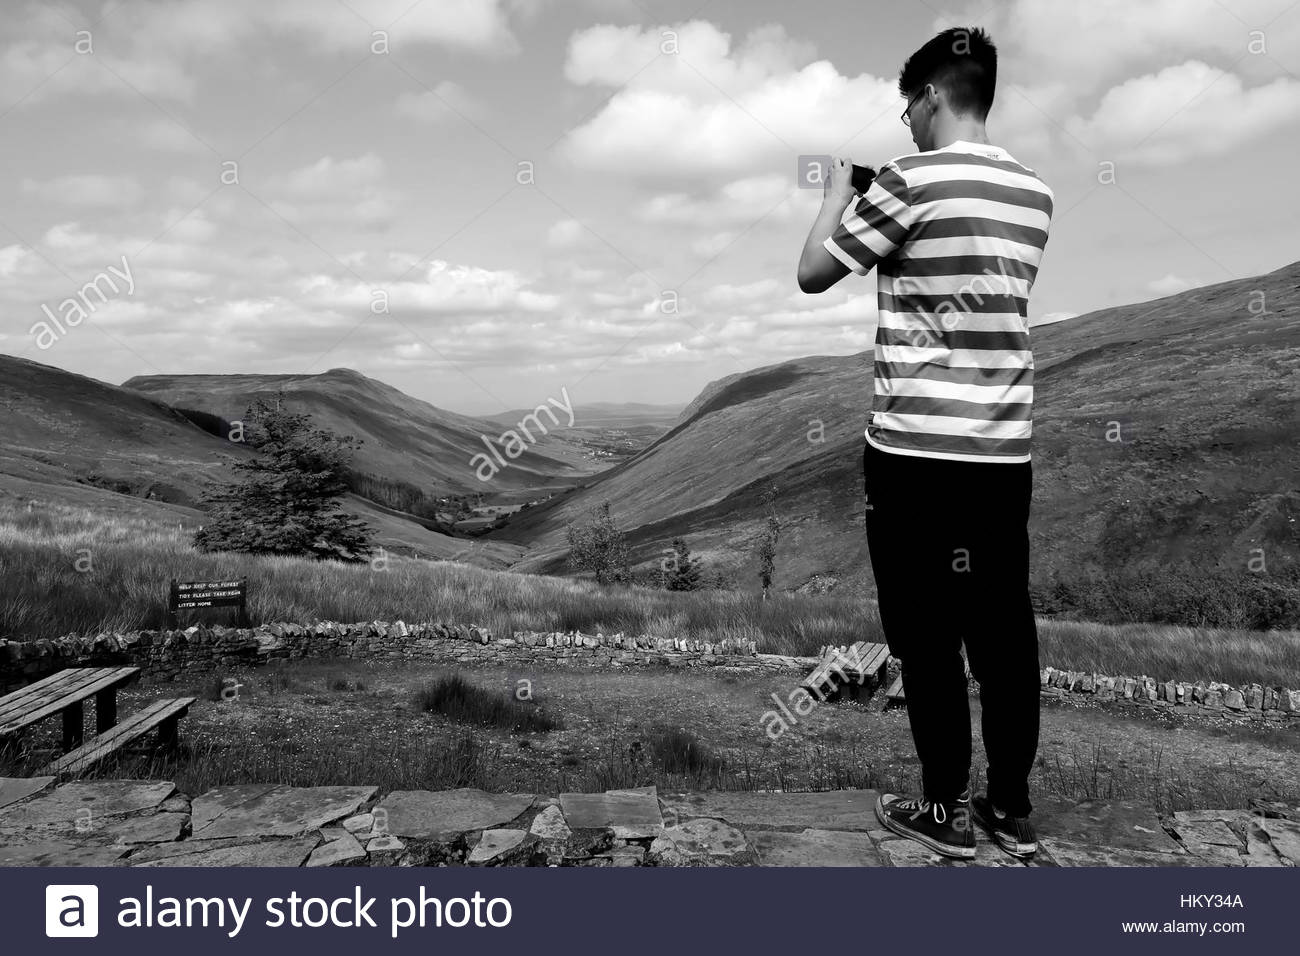 A young man in a green and white shirt takes a photograph of a valley in the West of Ireland - Stock Image